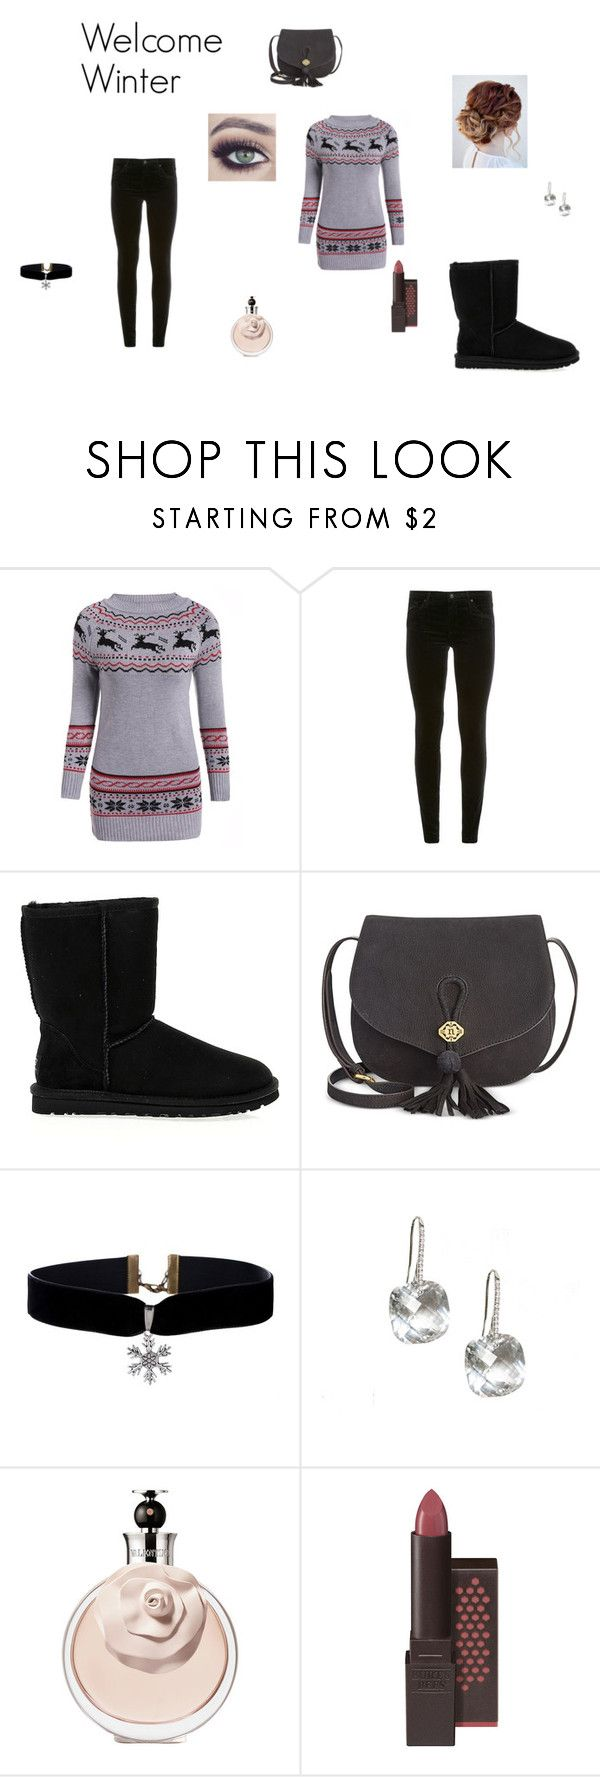 """""""Welcome Winter"""" by lizzie-raye ❤ liked on Polyvore featuring AG Adriano Goldschmied, UGG Australia and Nanette Lepore"""